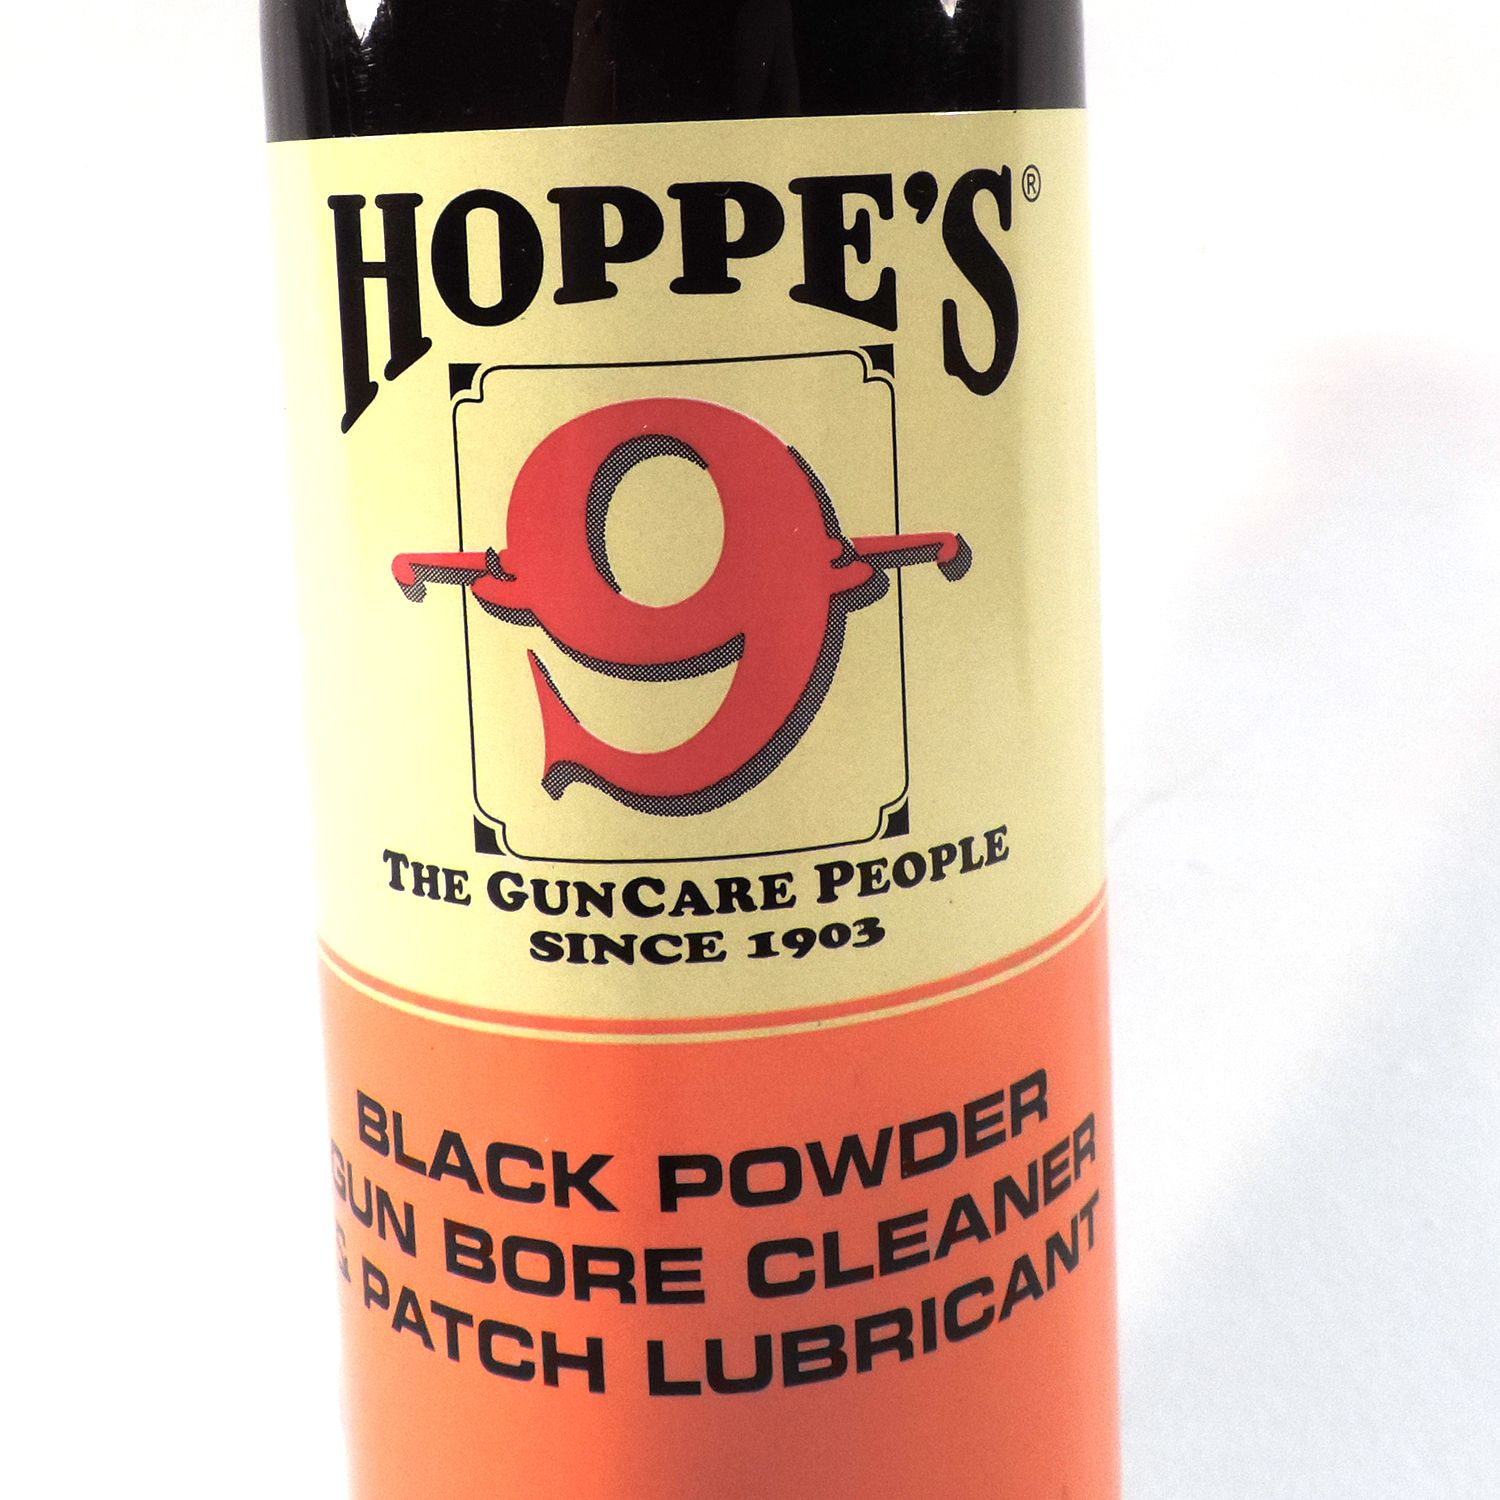 Hoppes No  9 Black Powder Gun Bore Cleaner and Patch